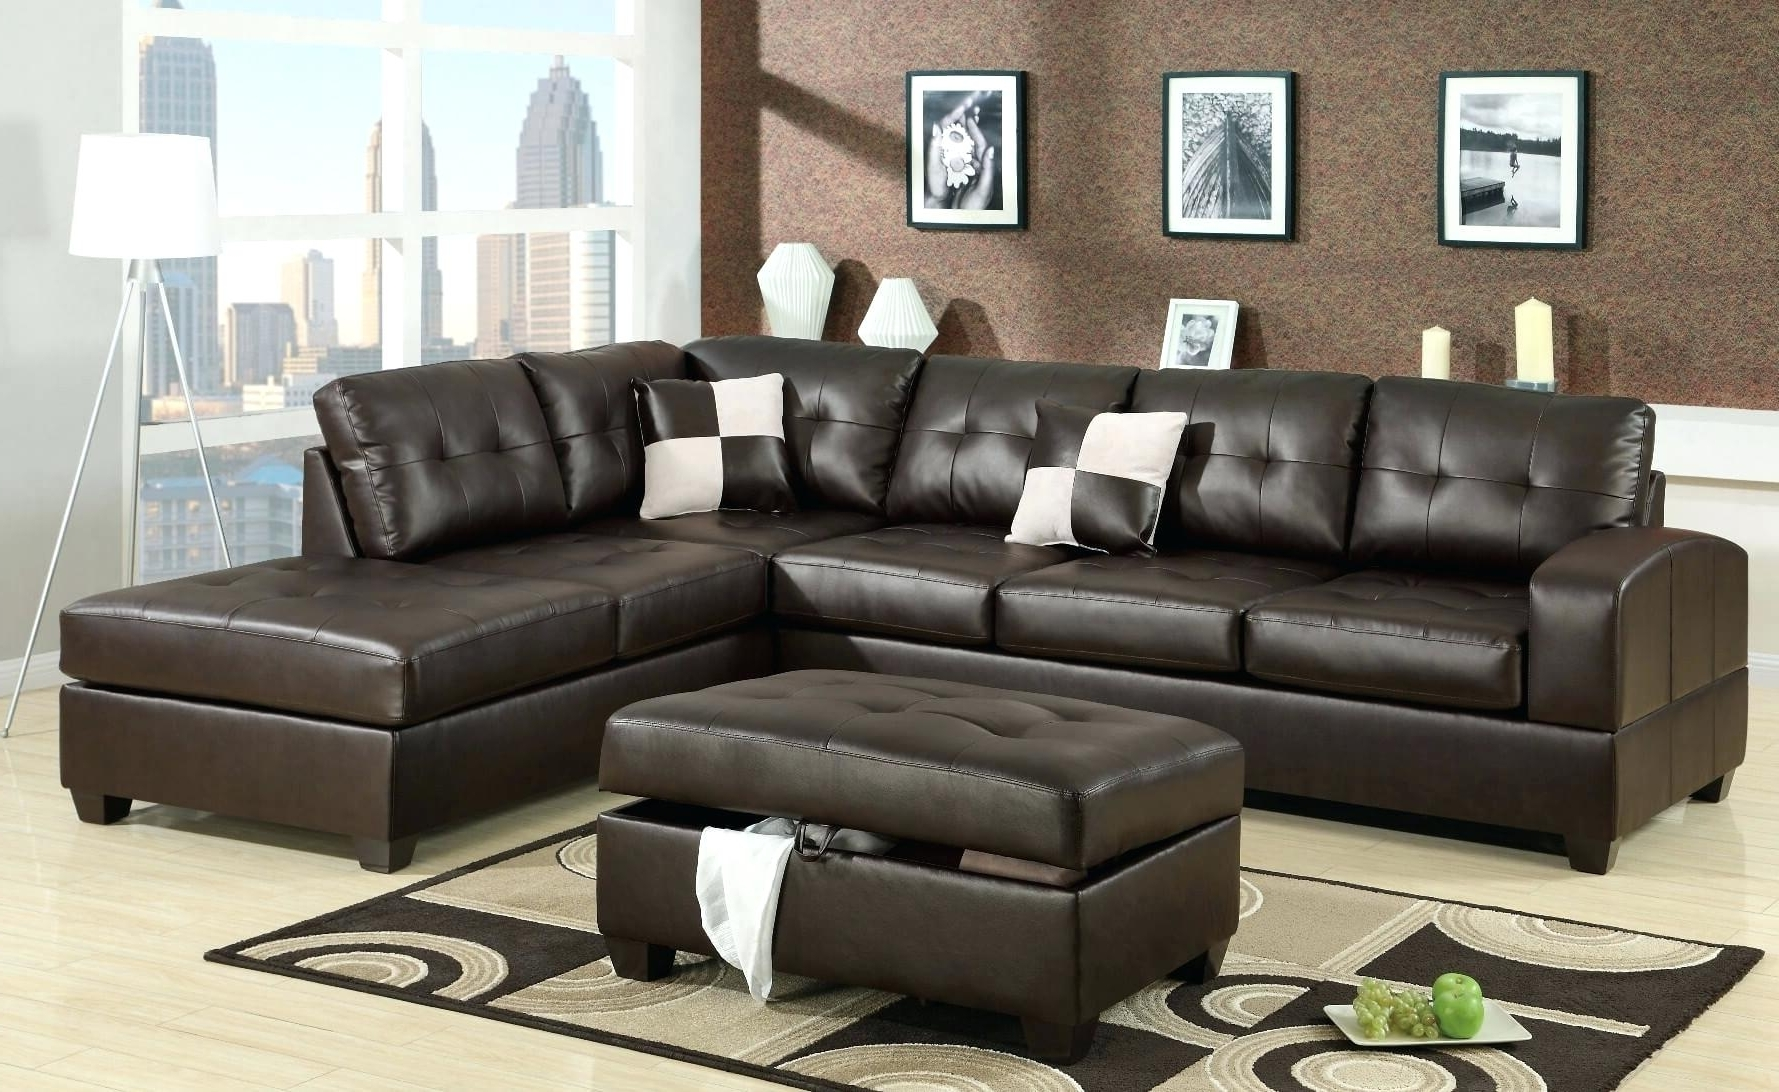 Well Known Clearance Sectional Sofas Within Leather Sofas Clearance Sas Sa Sectional Sofa And Loveseat Uk (View 19 of 20)